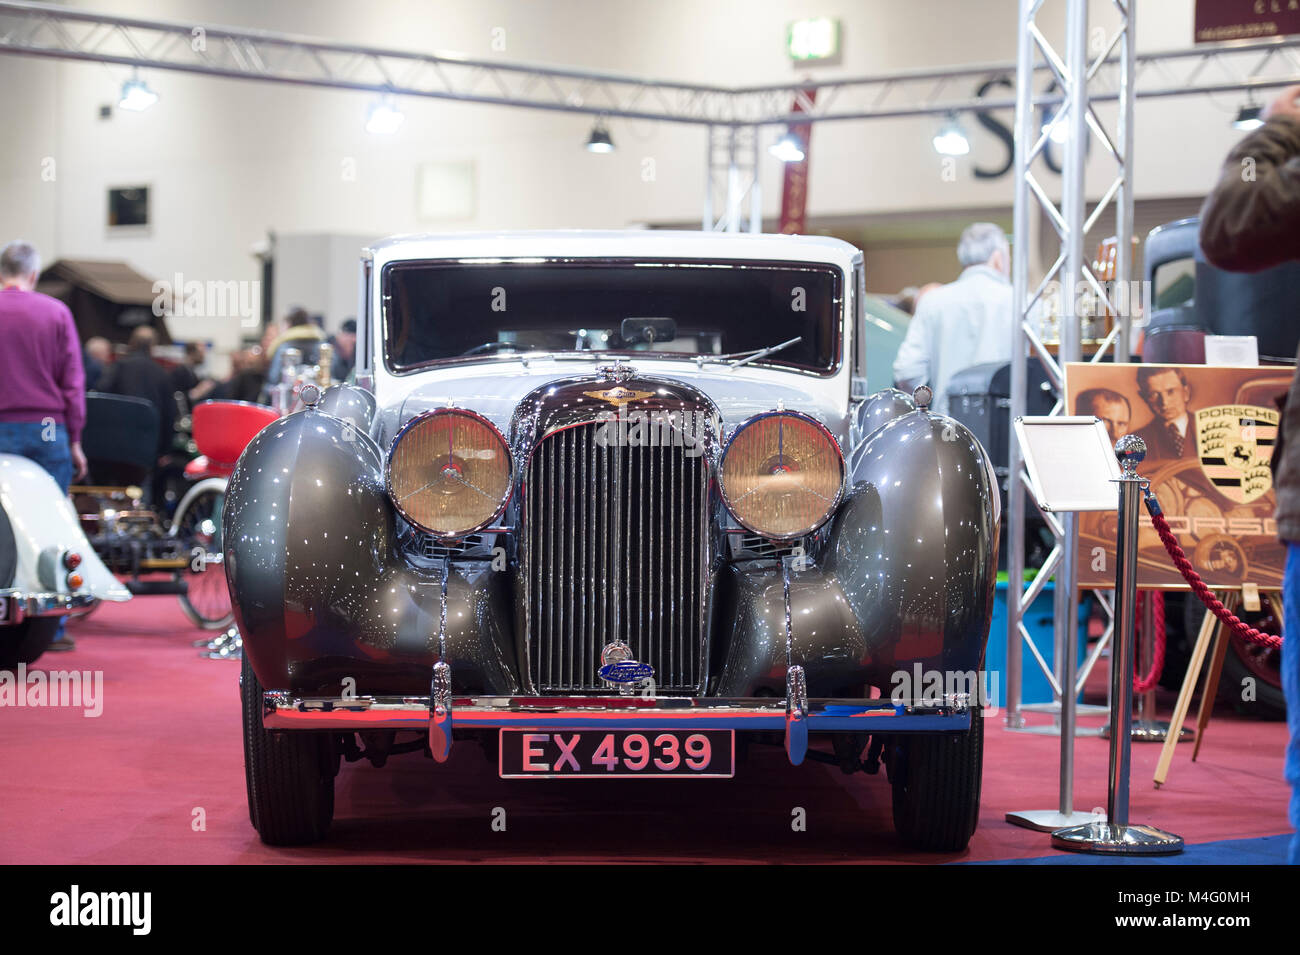 ExCel, London. 16 February 2018. Visitors flock to The London Classic Car Show, expanded this year to fill one side - Stock Image